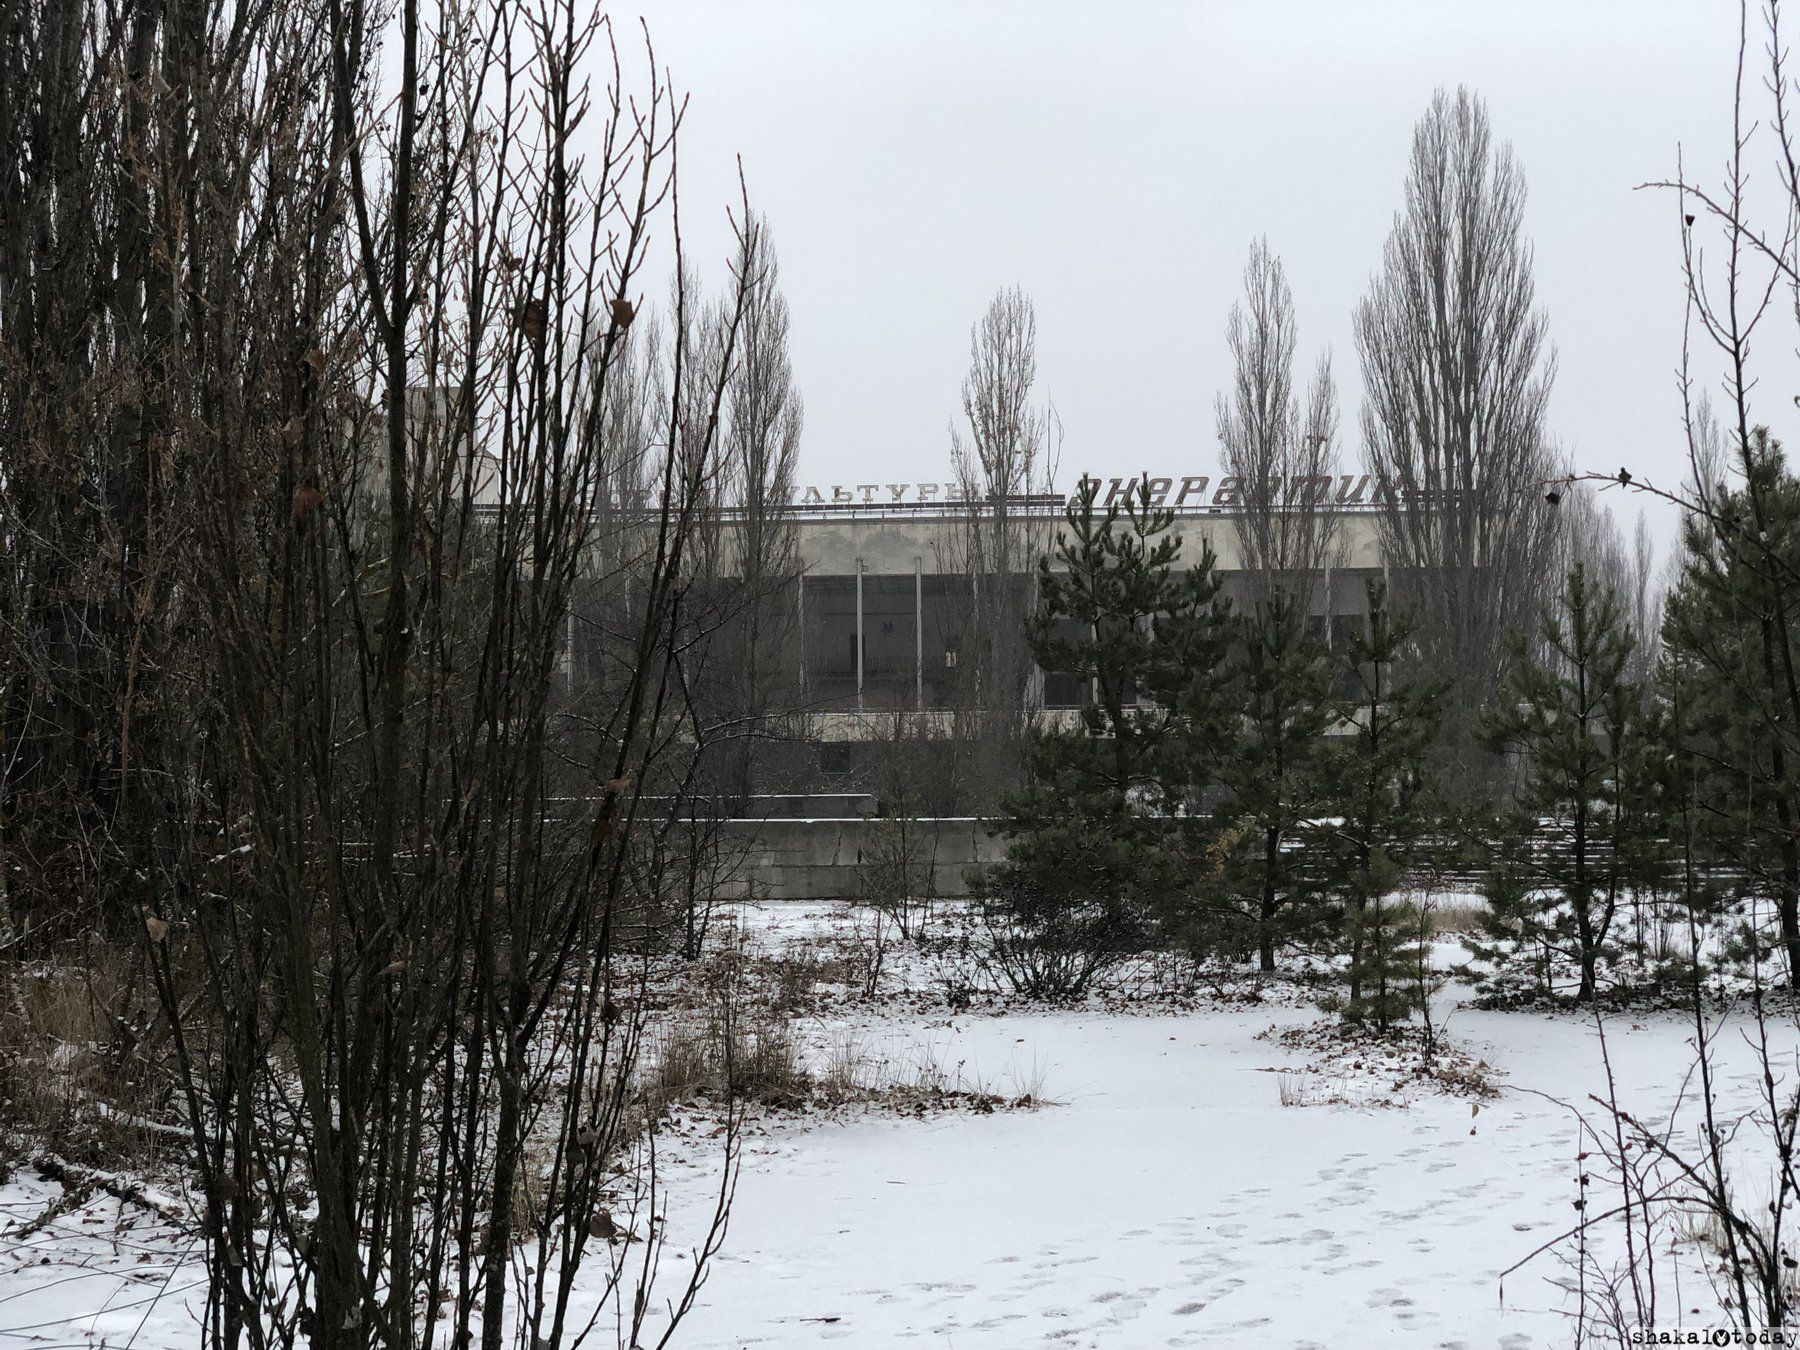 Shakal-Today-Pripyat-0010.jpg